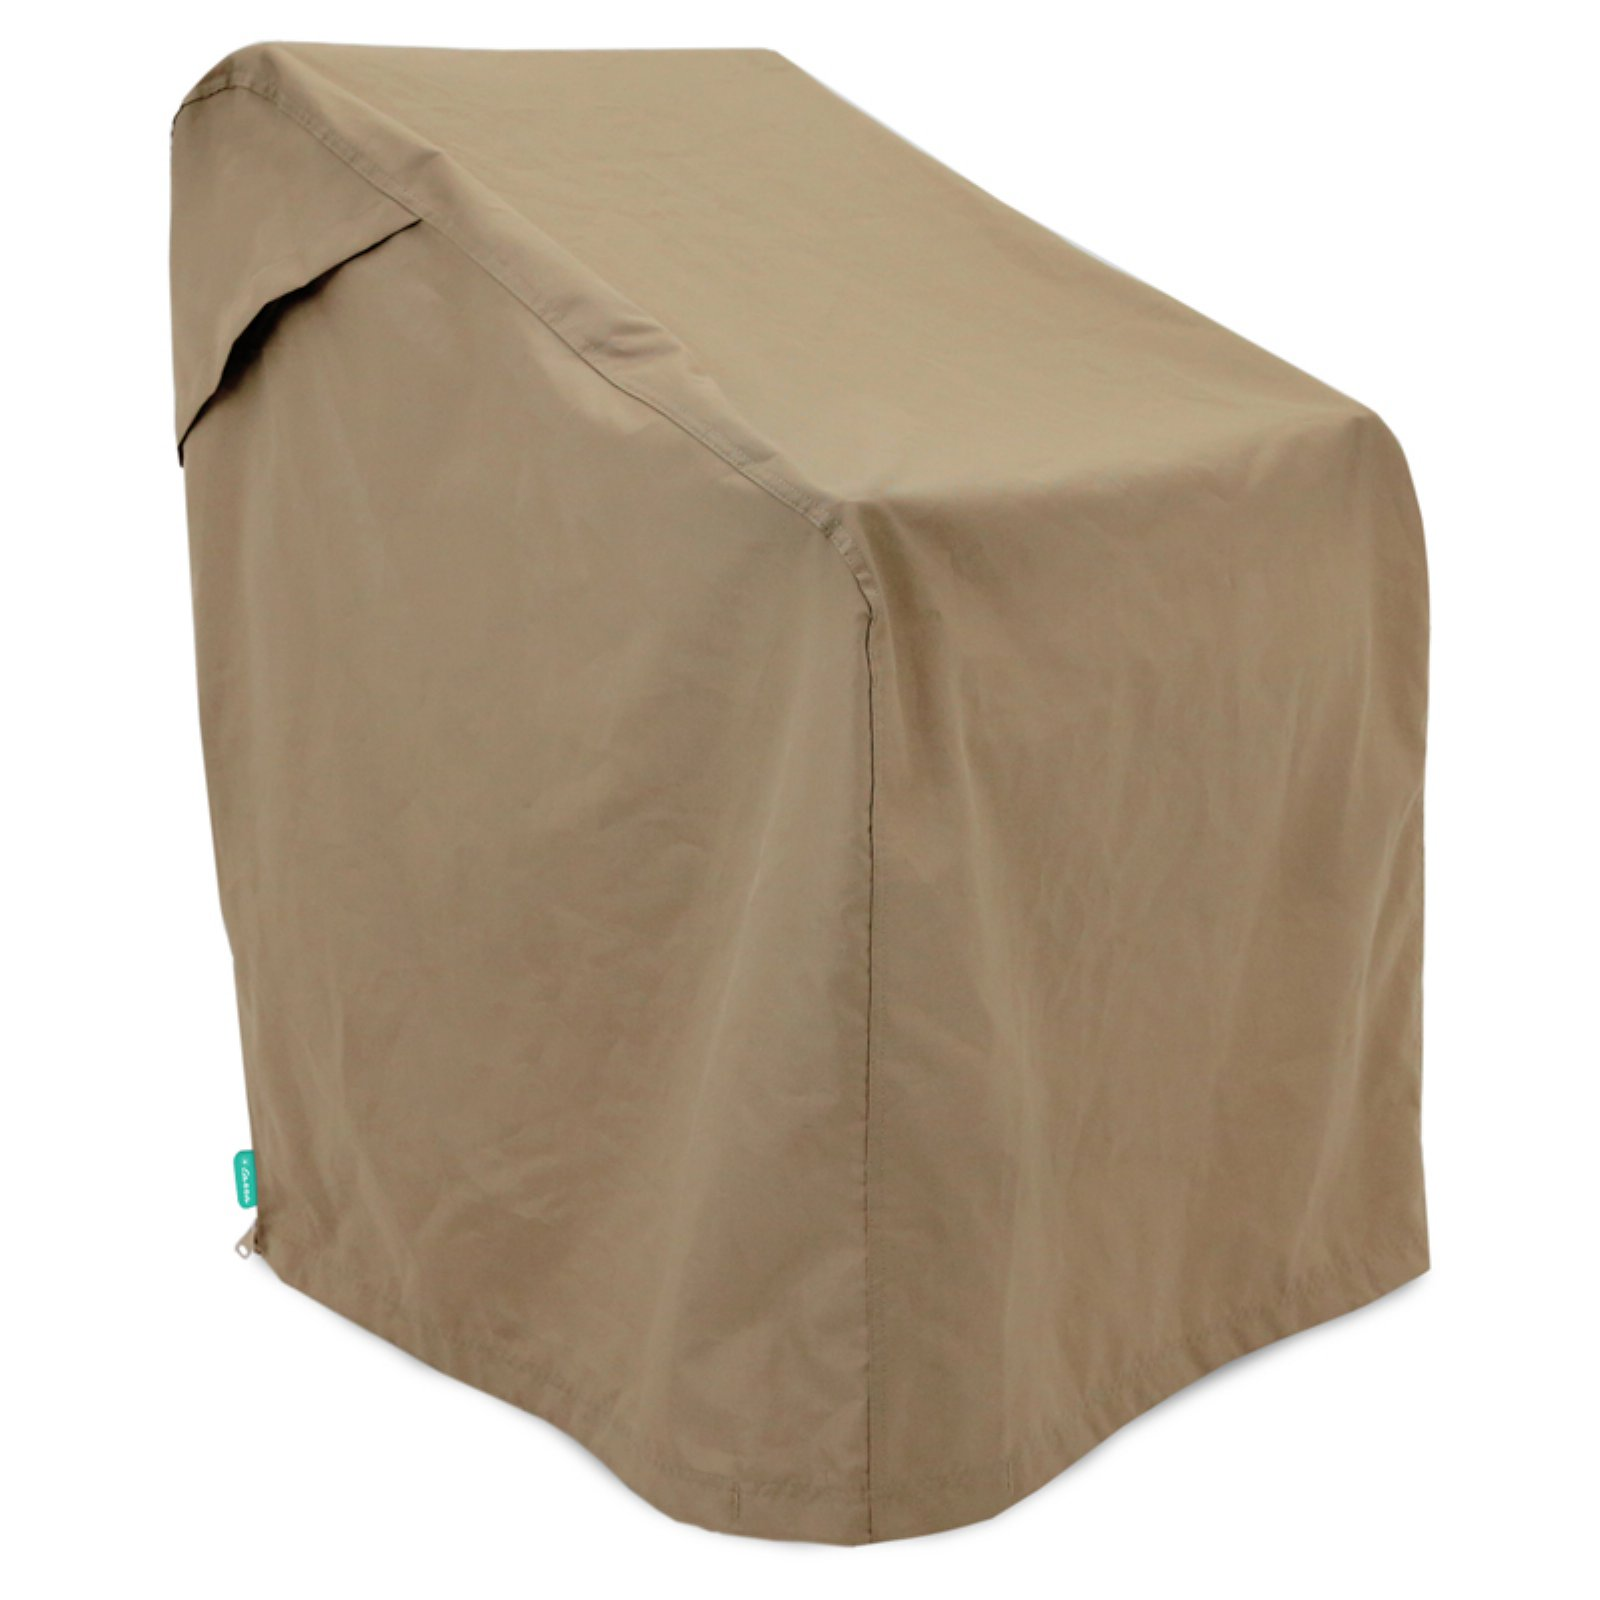 Tarra Home Universal Outdoor UFCCC303030PT Patio Modular Sectional Club Chair Cover